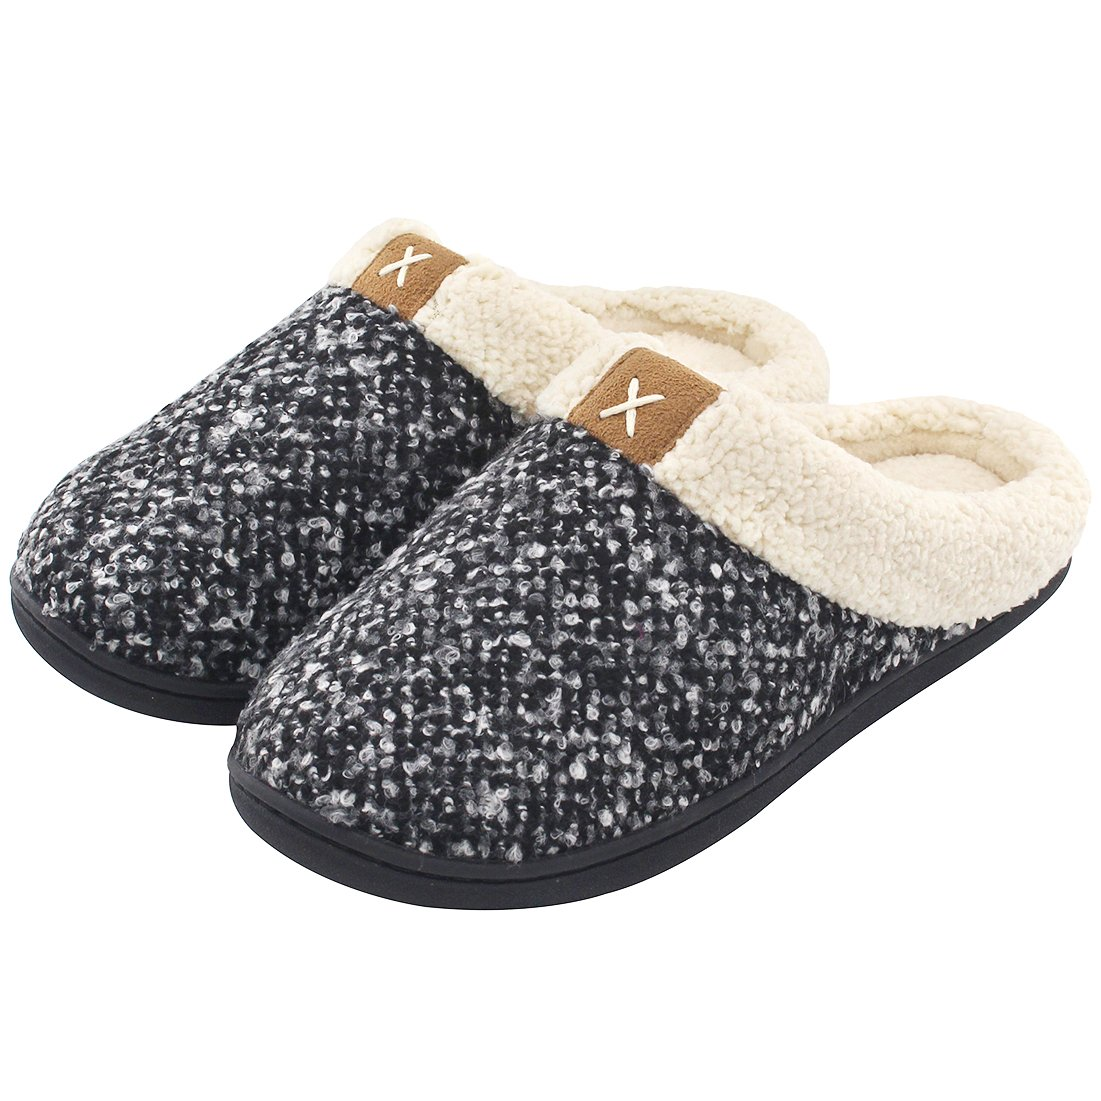 16 Cozy Slippers Perfect For Anyone Whos Always Cold